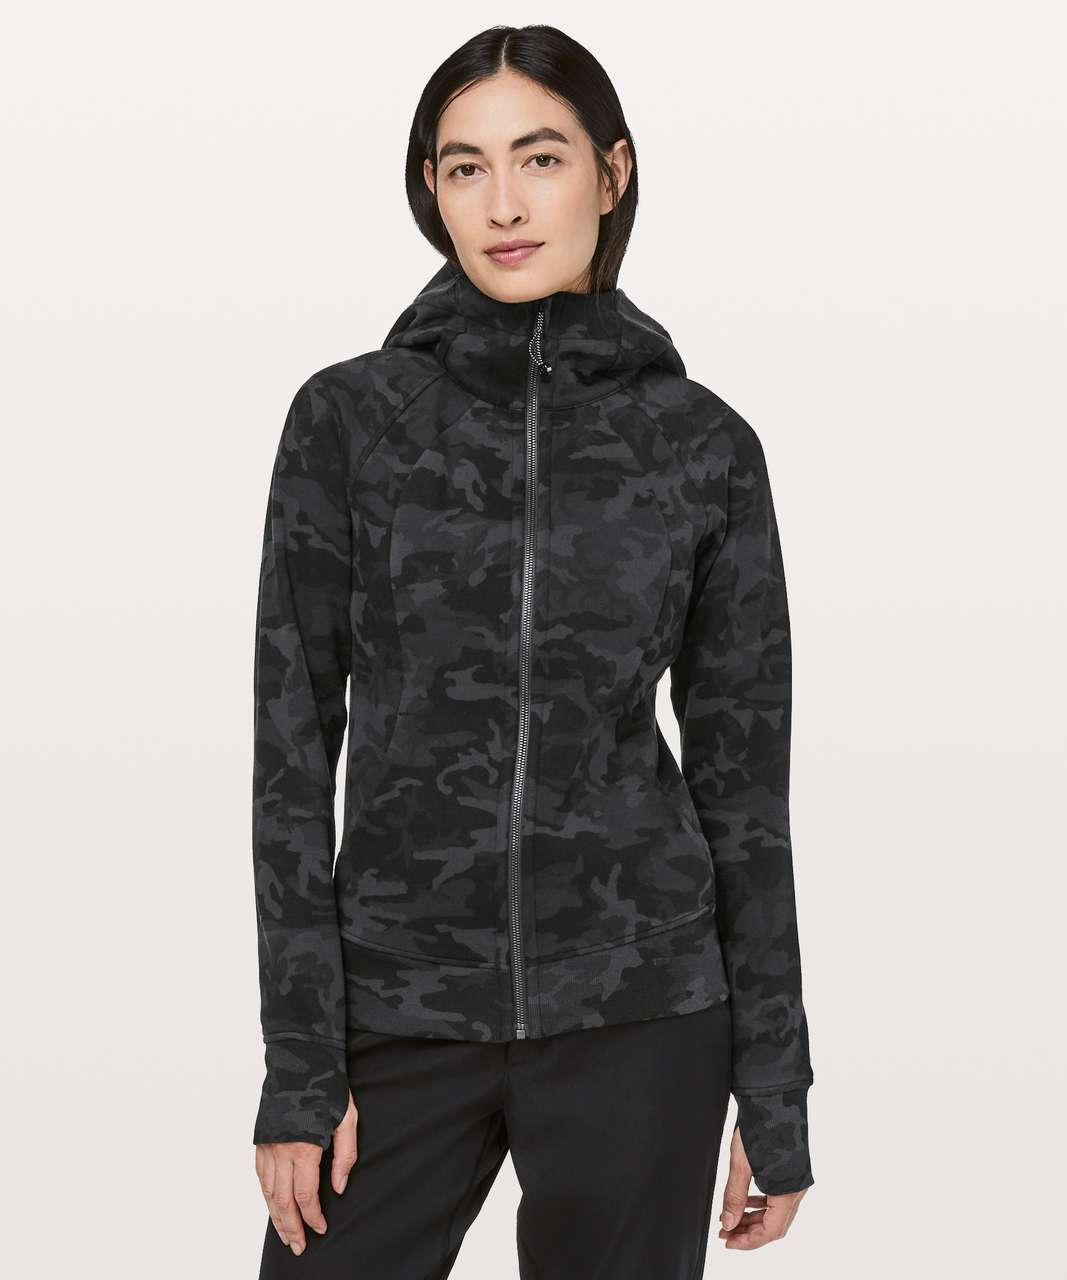 Lululemon Scuba Hoodie *Light Cotton Fleece - Incognito Camo Multi Grey